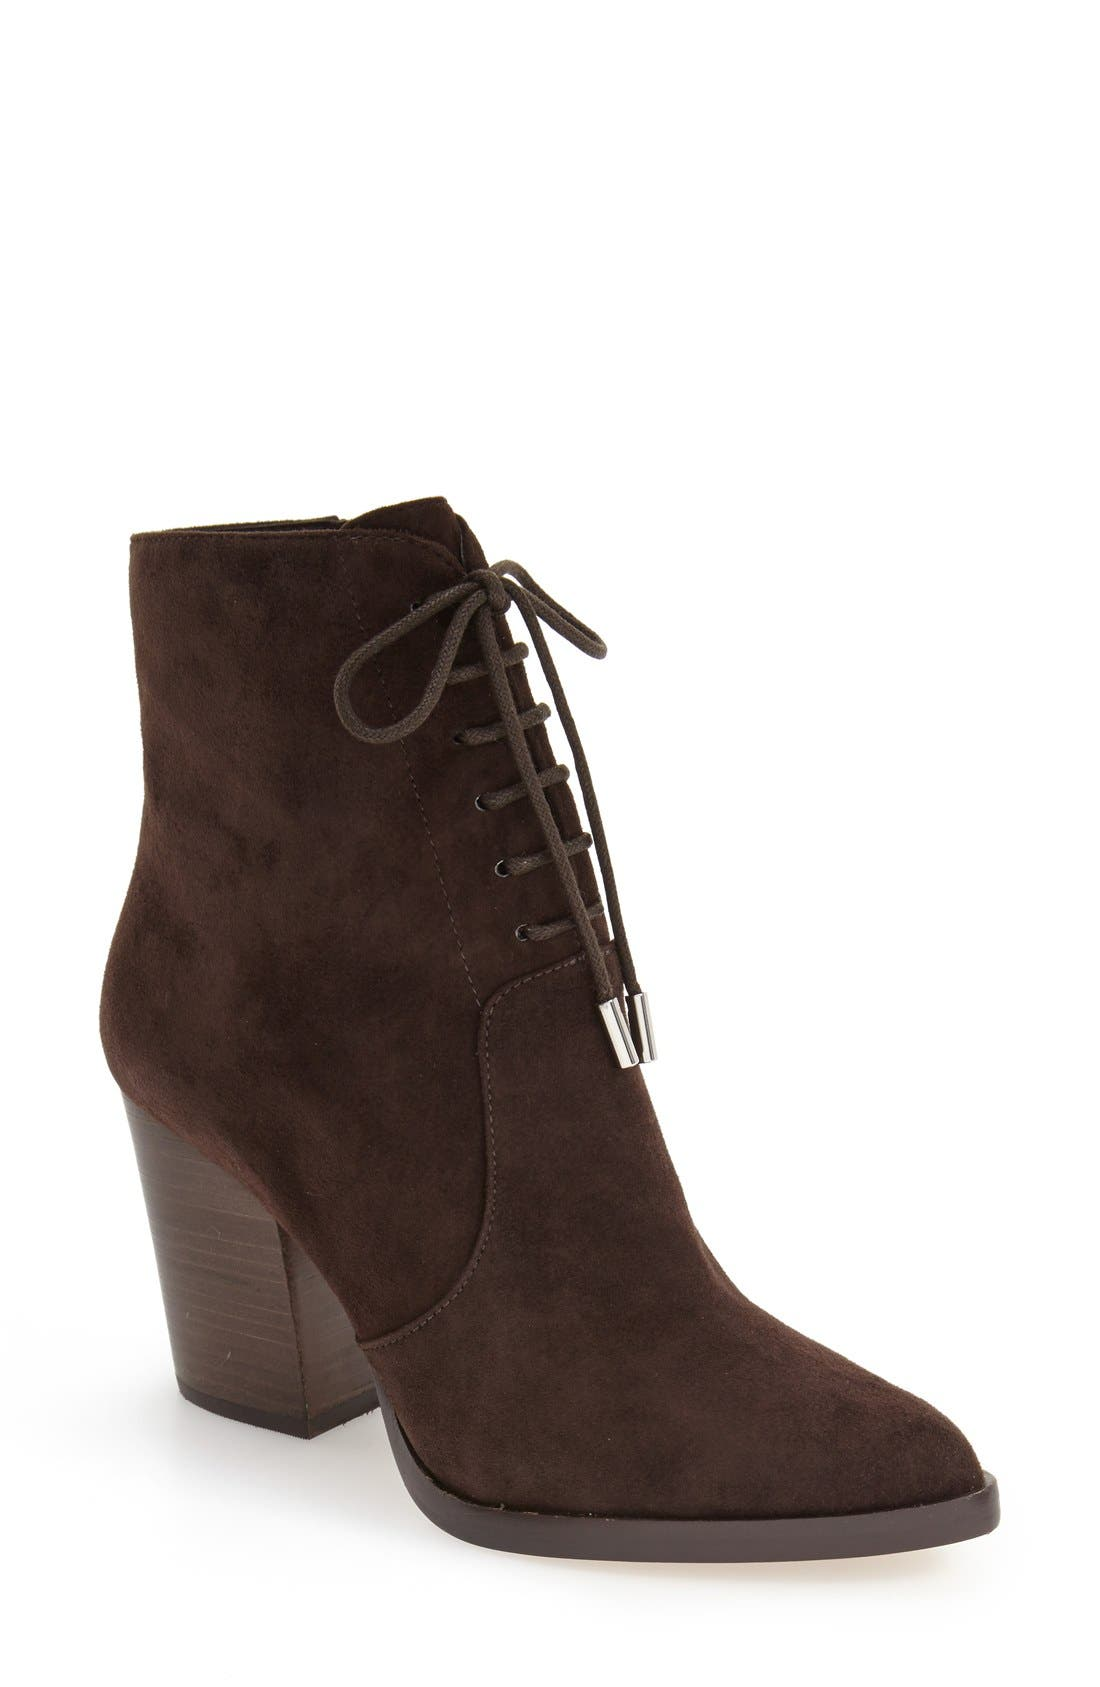 Main Image - Marc Fisher LTD Aaliyah Pointy Toe Lace-Up Bootie (Women)